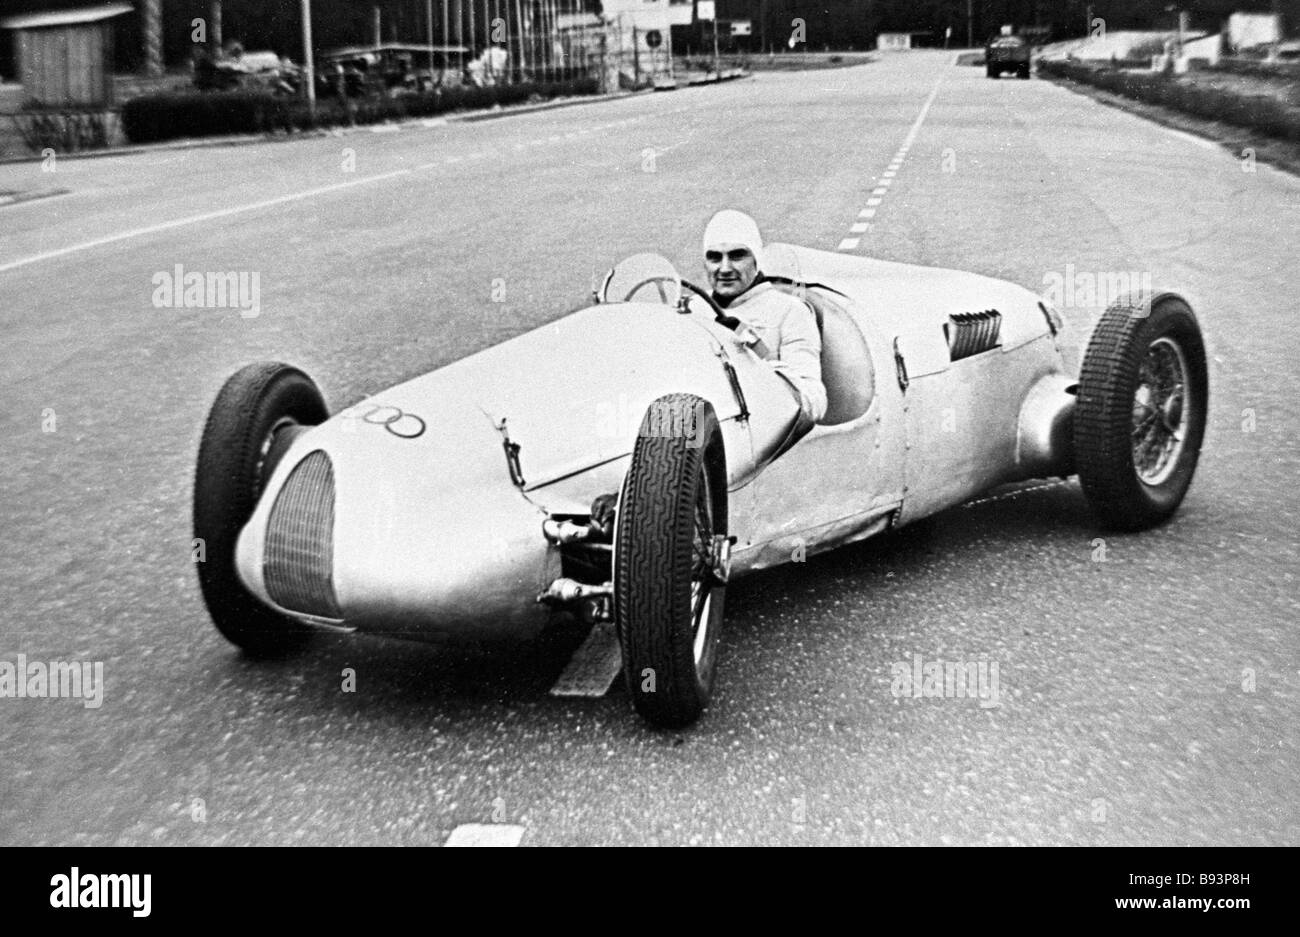 Chairman of antique cars club at the wheel of 1936 Auto Union racing car - Stock Image